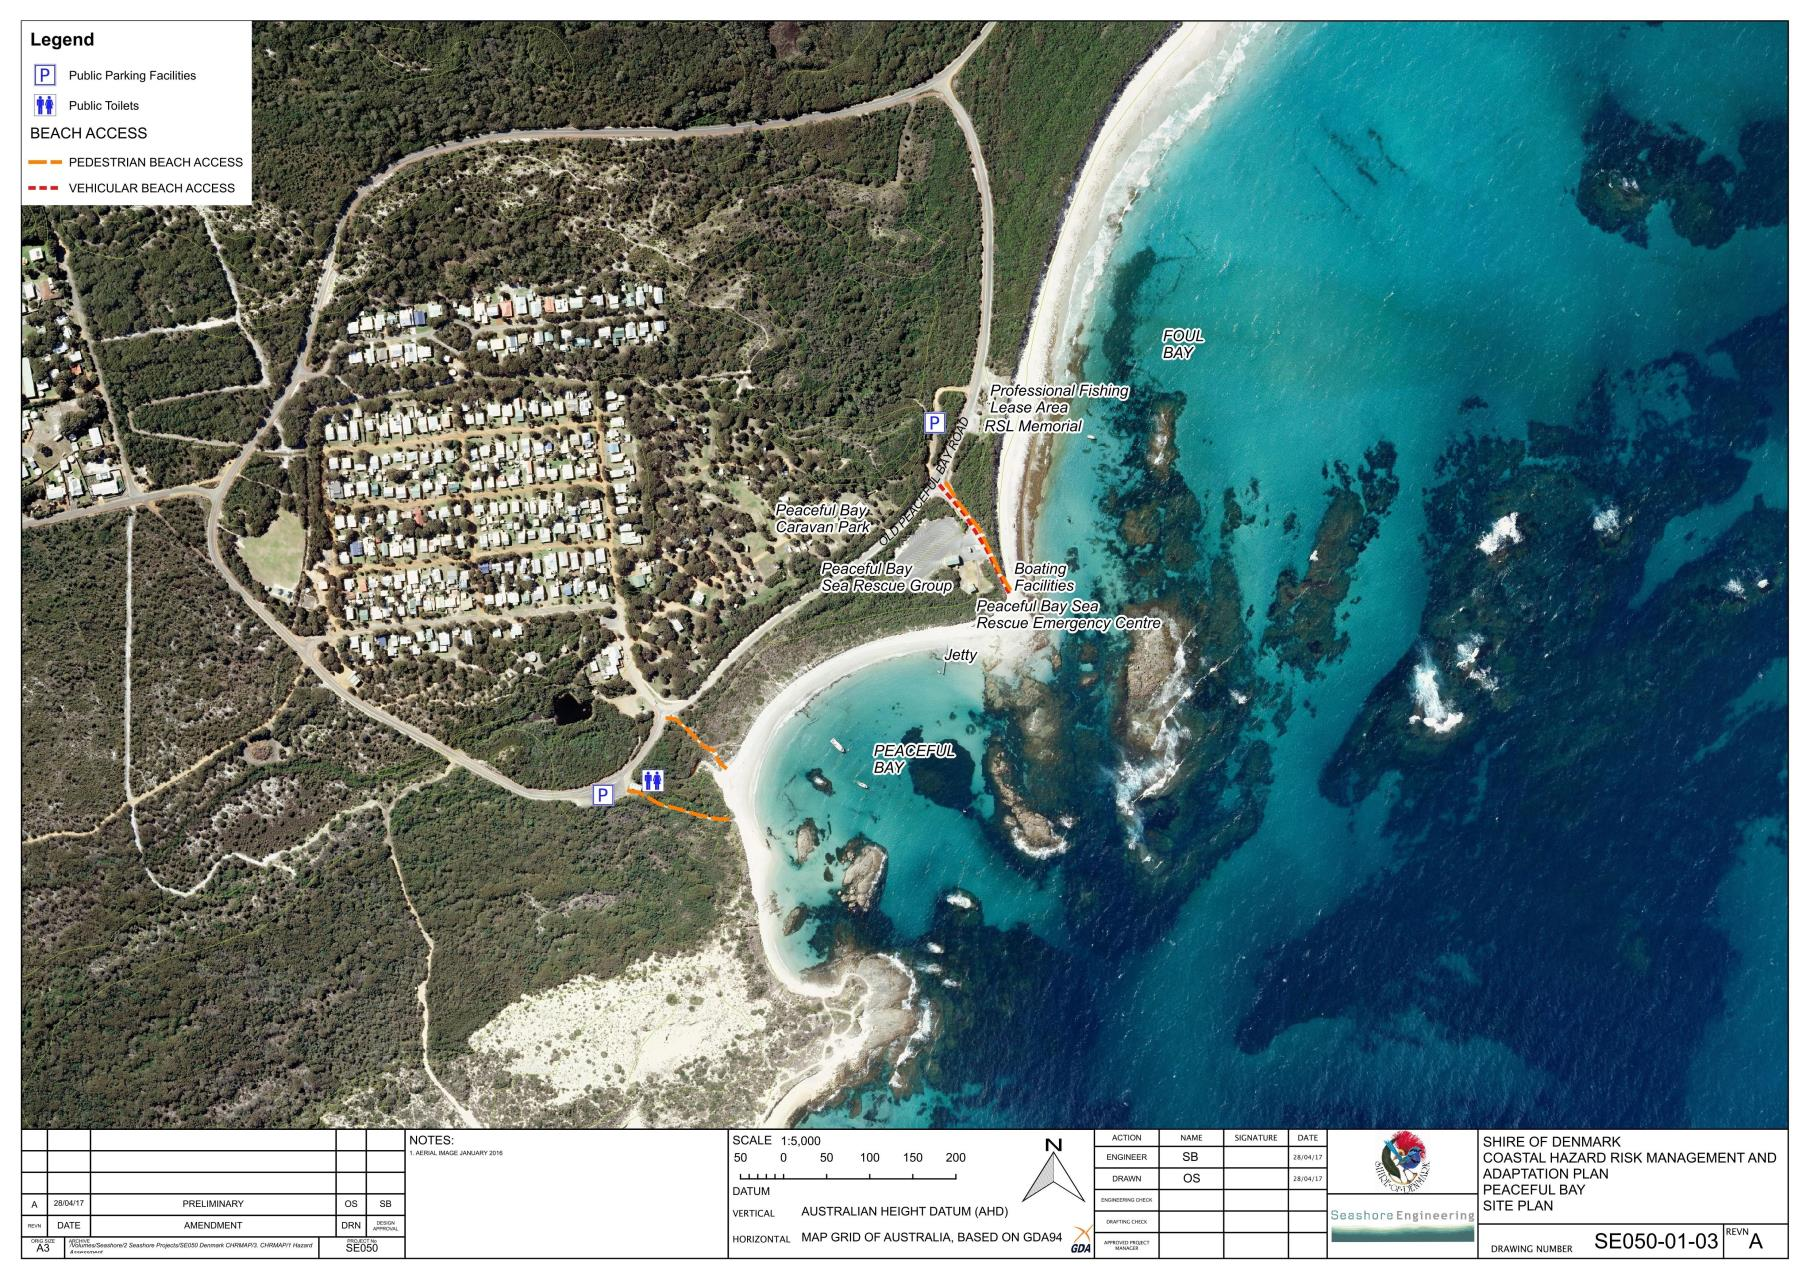 Ocean beach and peaceful bay coast plan and concept plan shire of when gumiabroncs Image collections